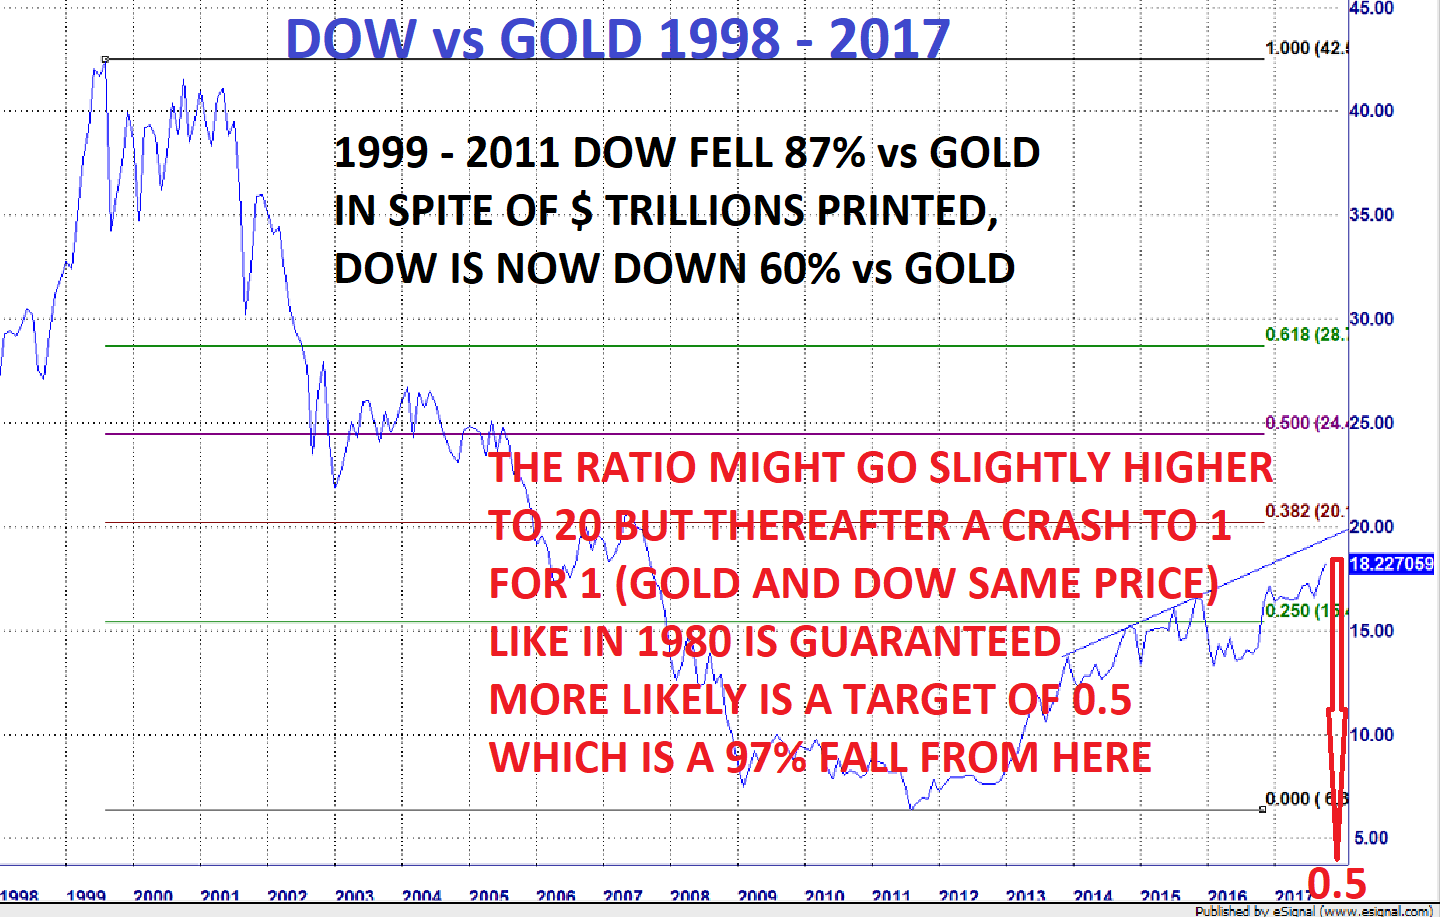 Dow vs Gold 1998 - 2017